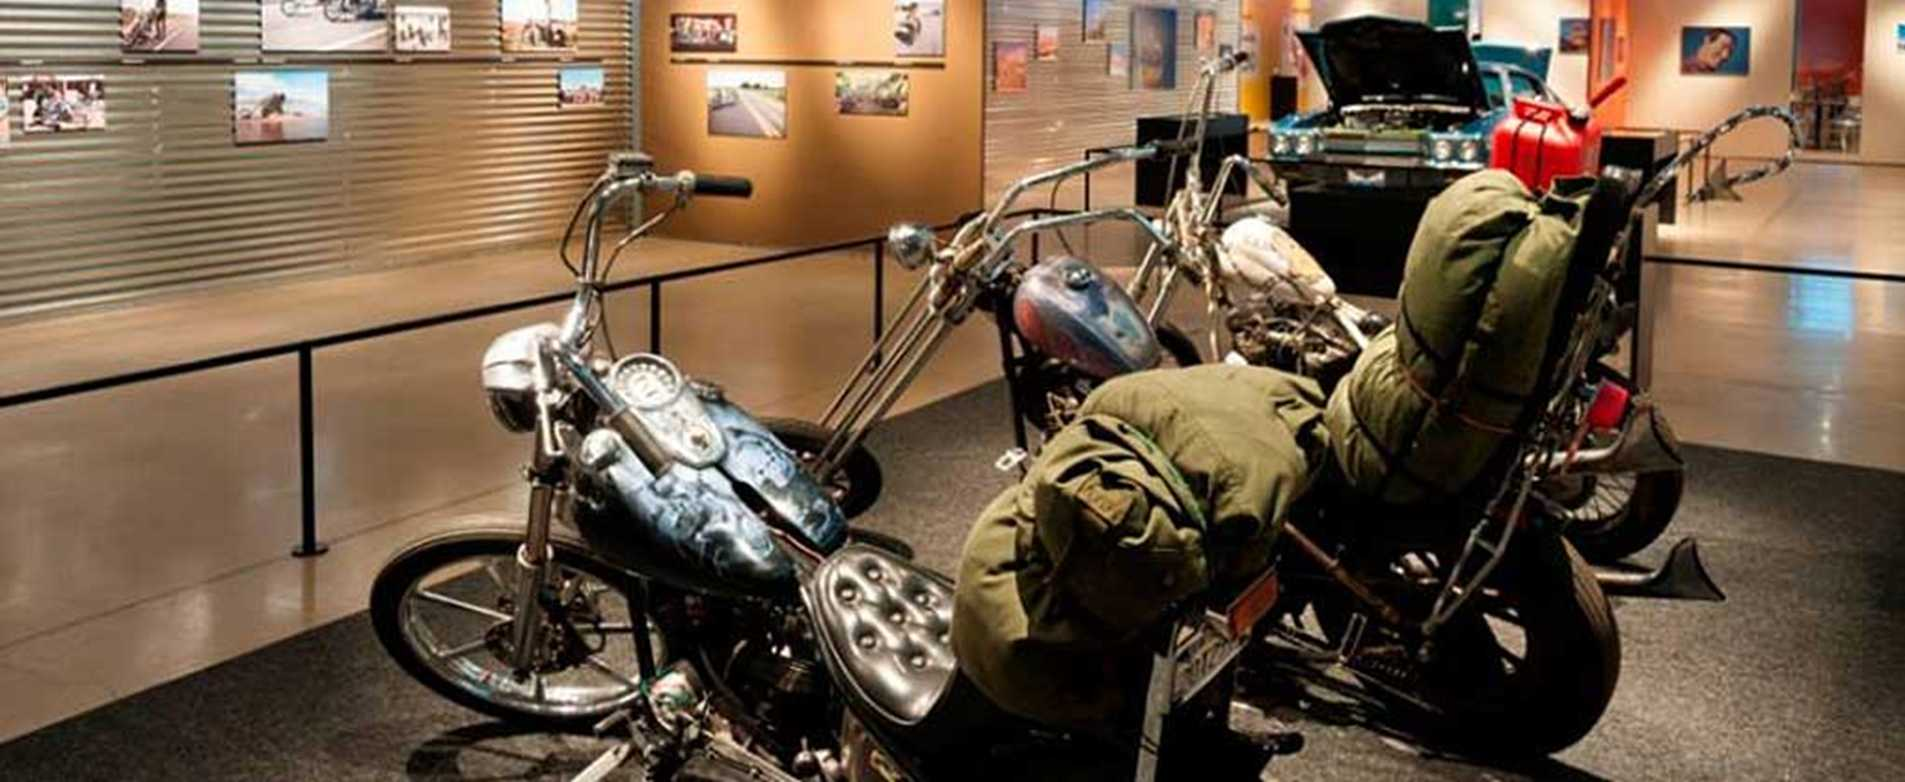 The American Road exhibit